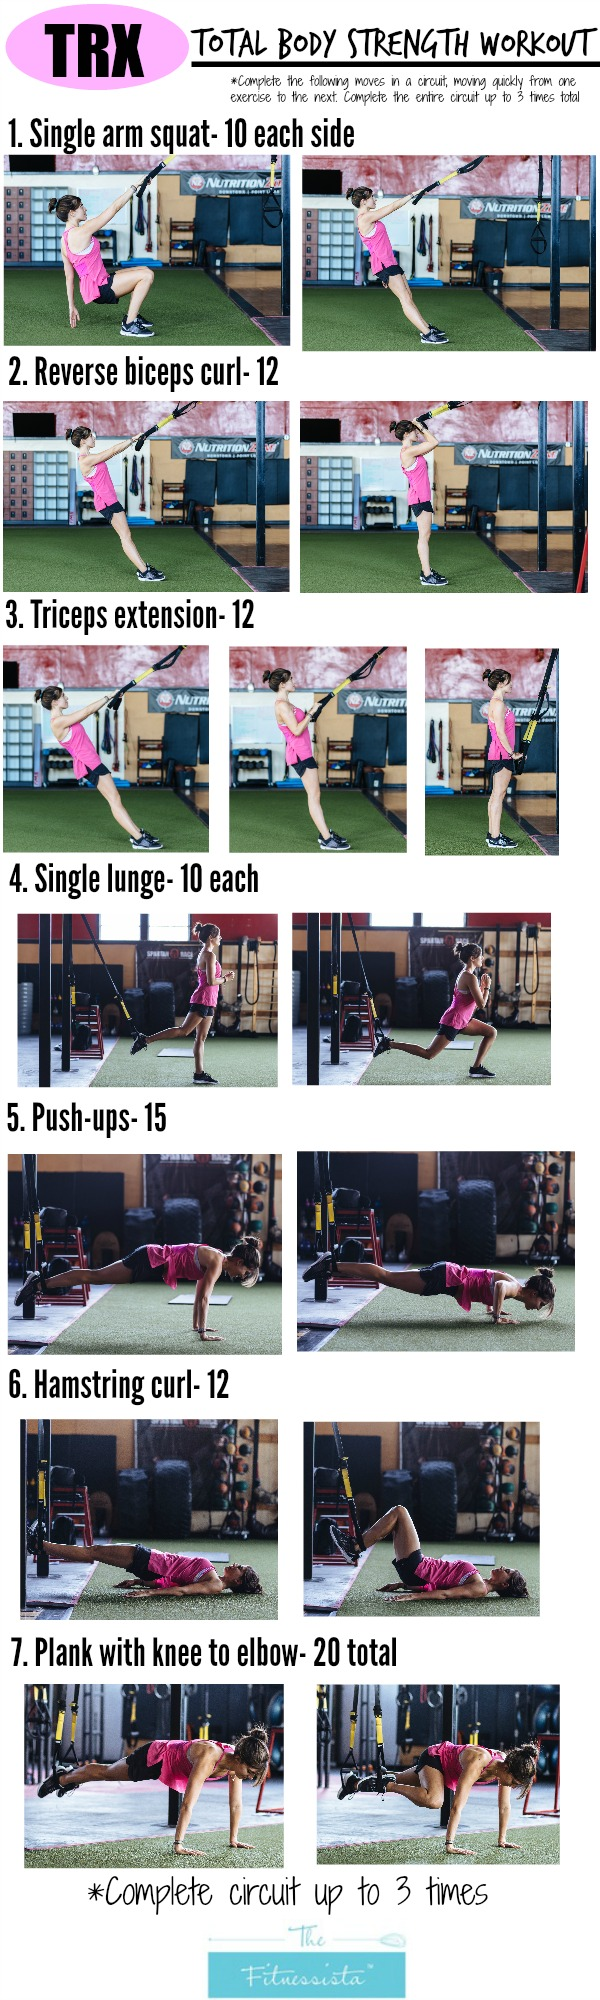 TRX Workout: A 25-Minute Total-Body Routine